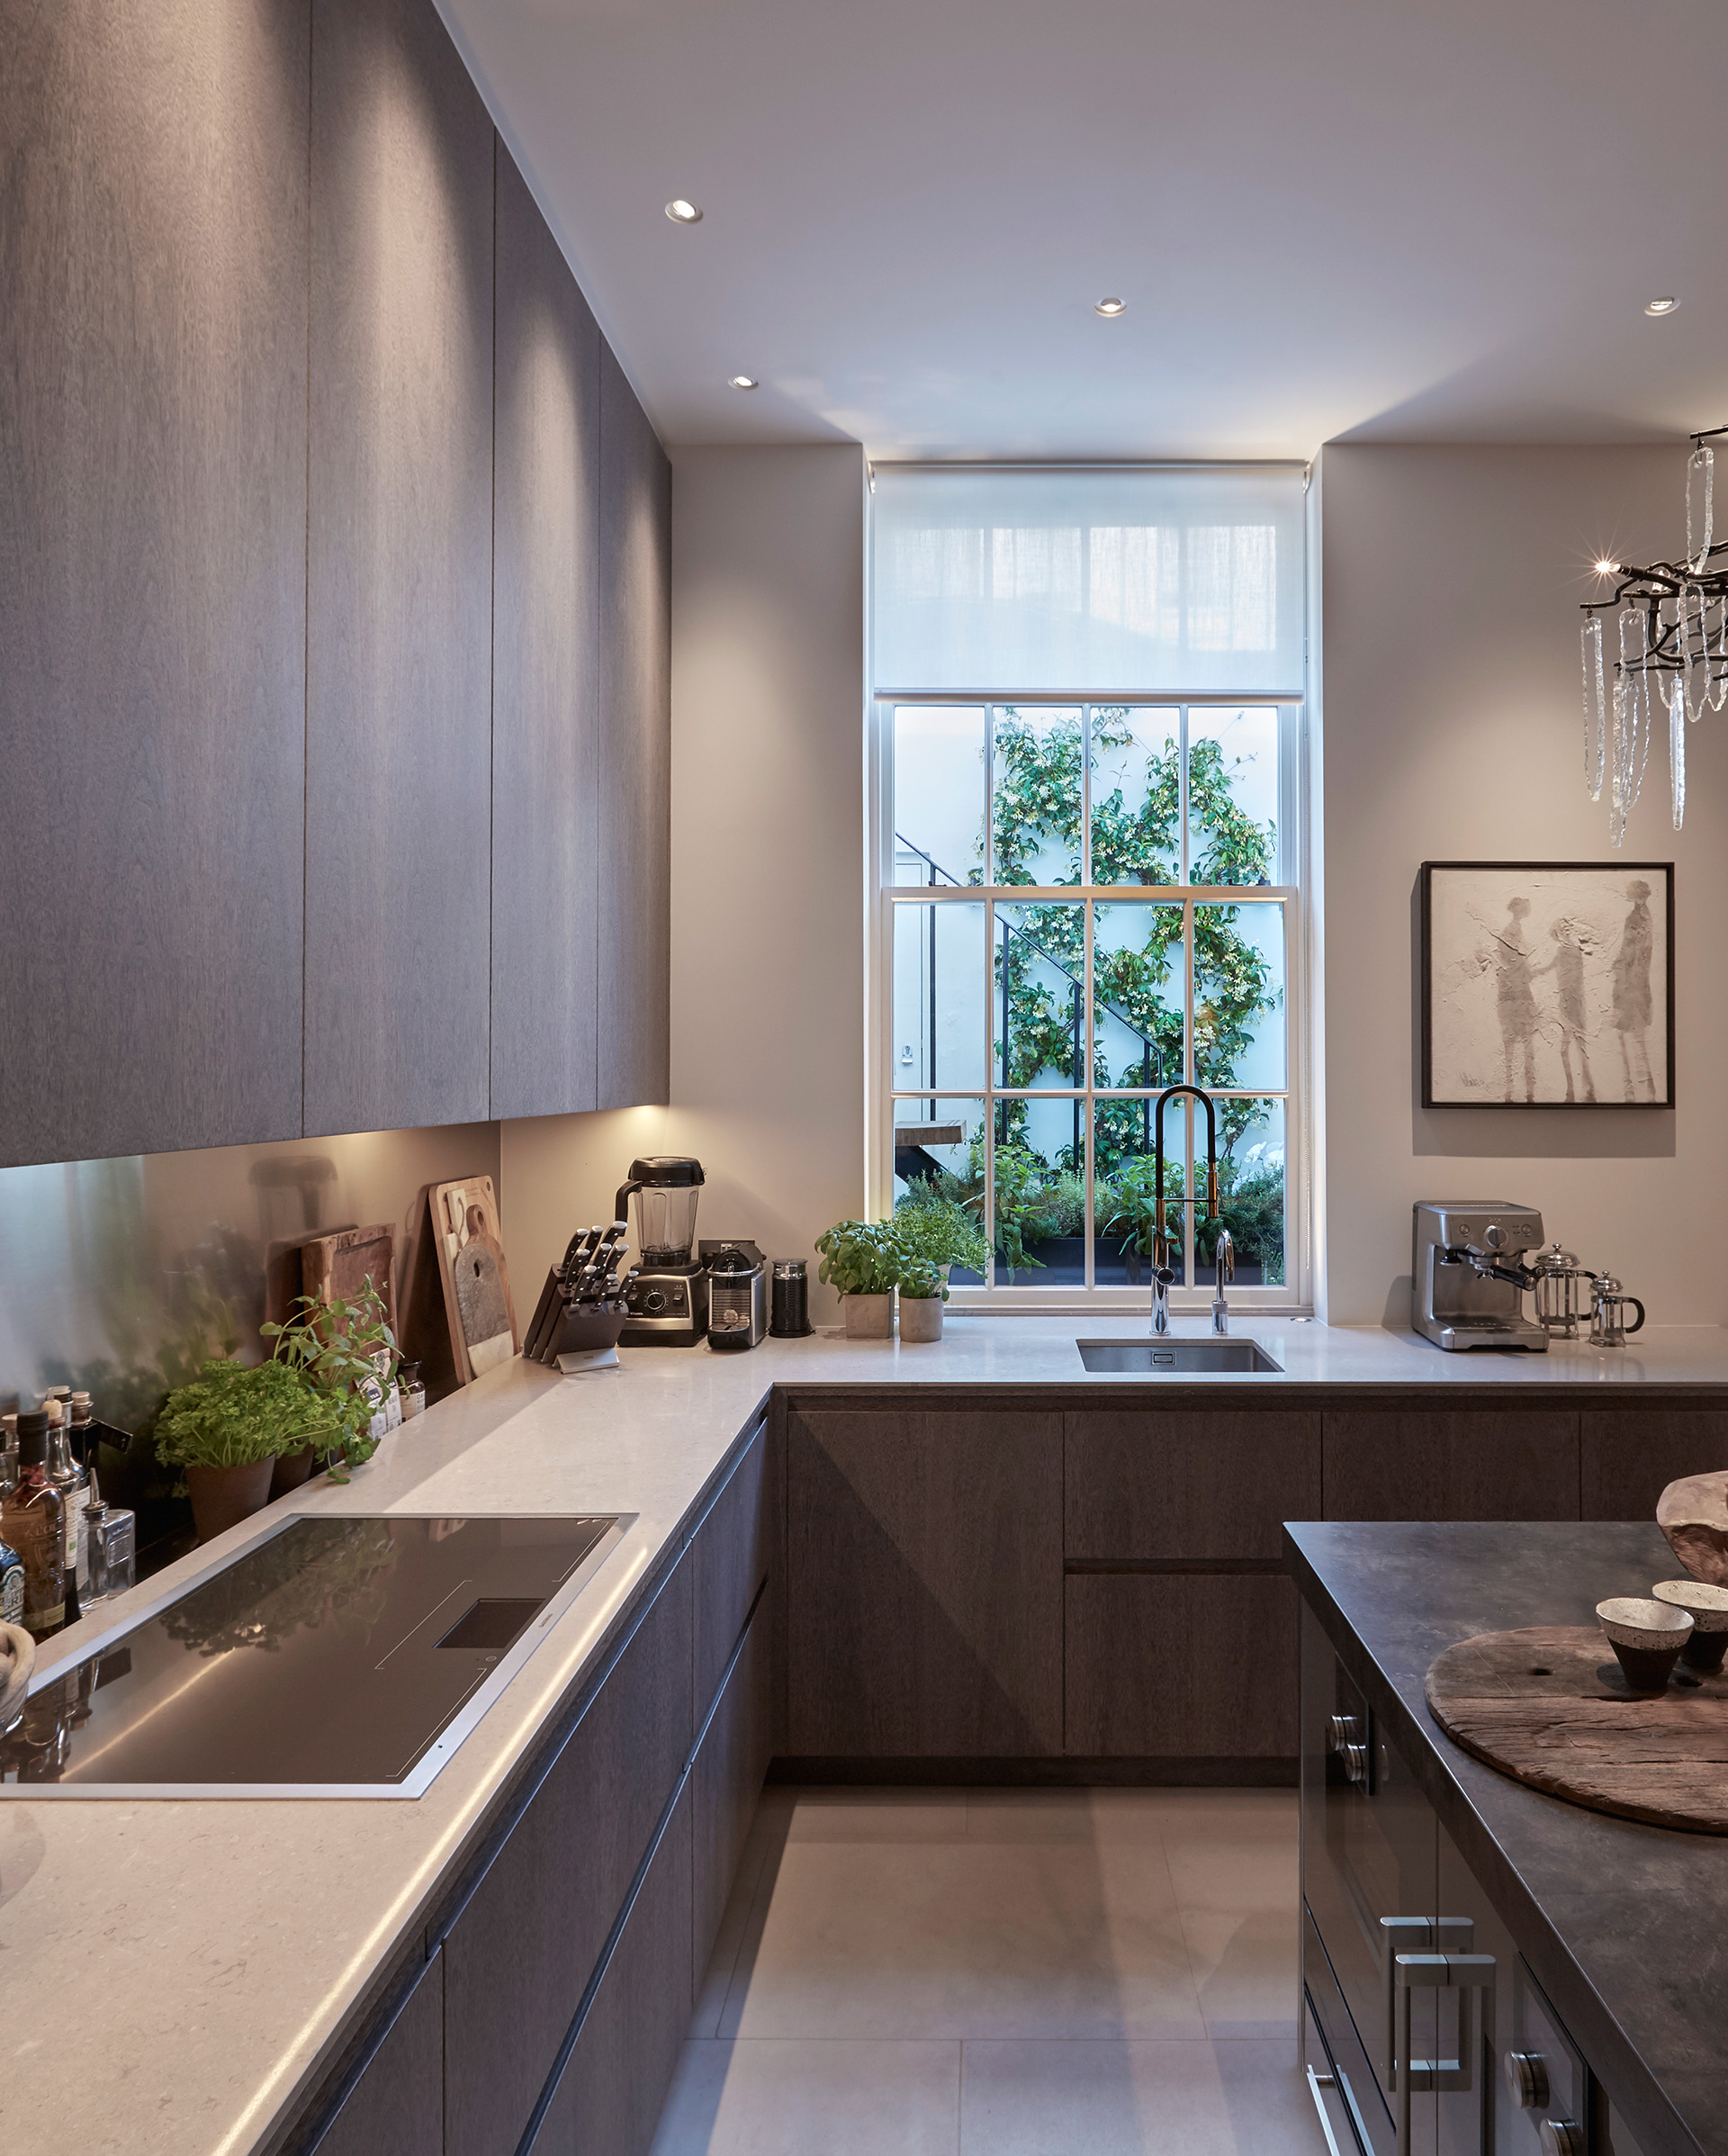 The kitchen also overlooks a small outdoor area flush with greenery| Louise Bradley| London| STIR